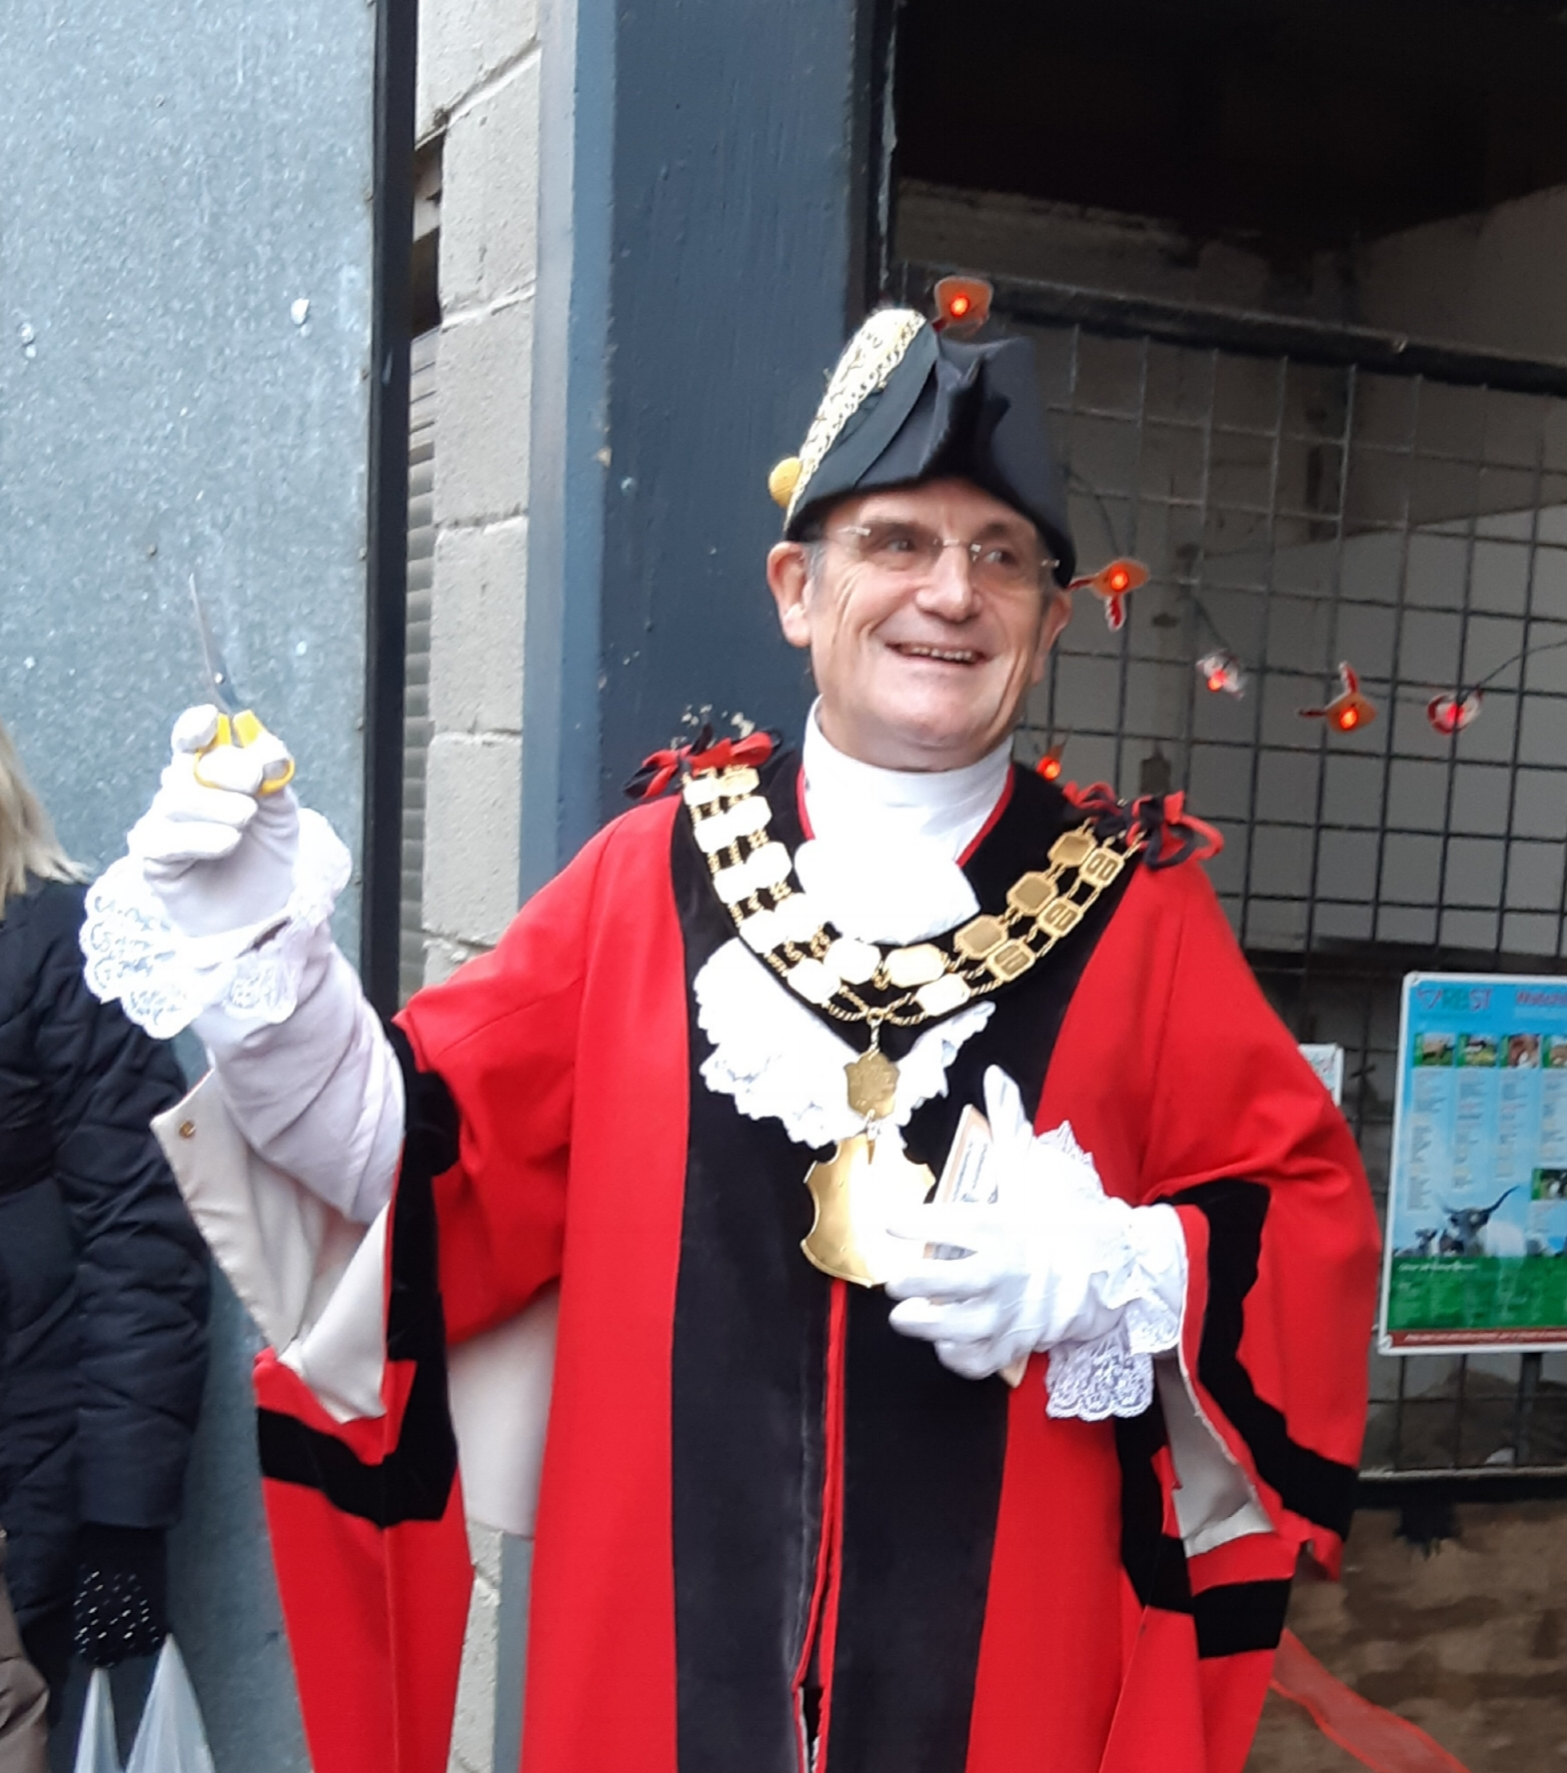 The Mayor Councillor David Poyser welcoming everyone ready for ribbon duty.